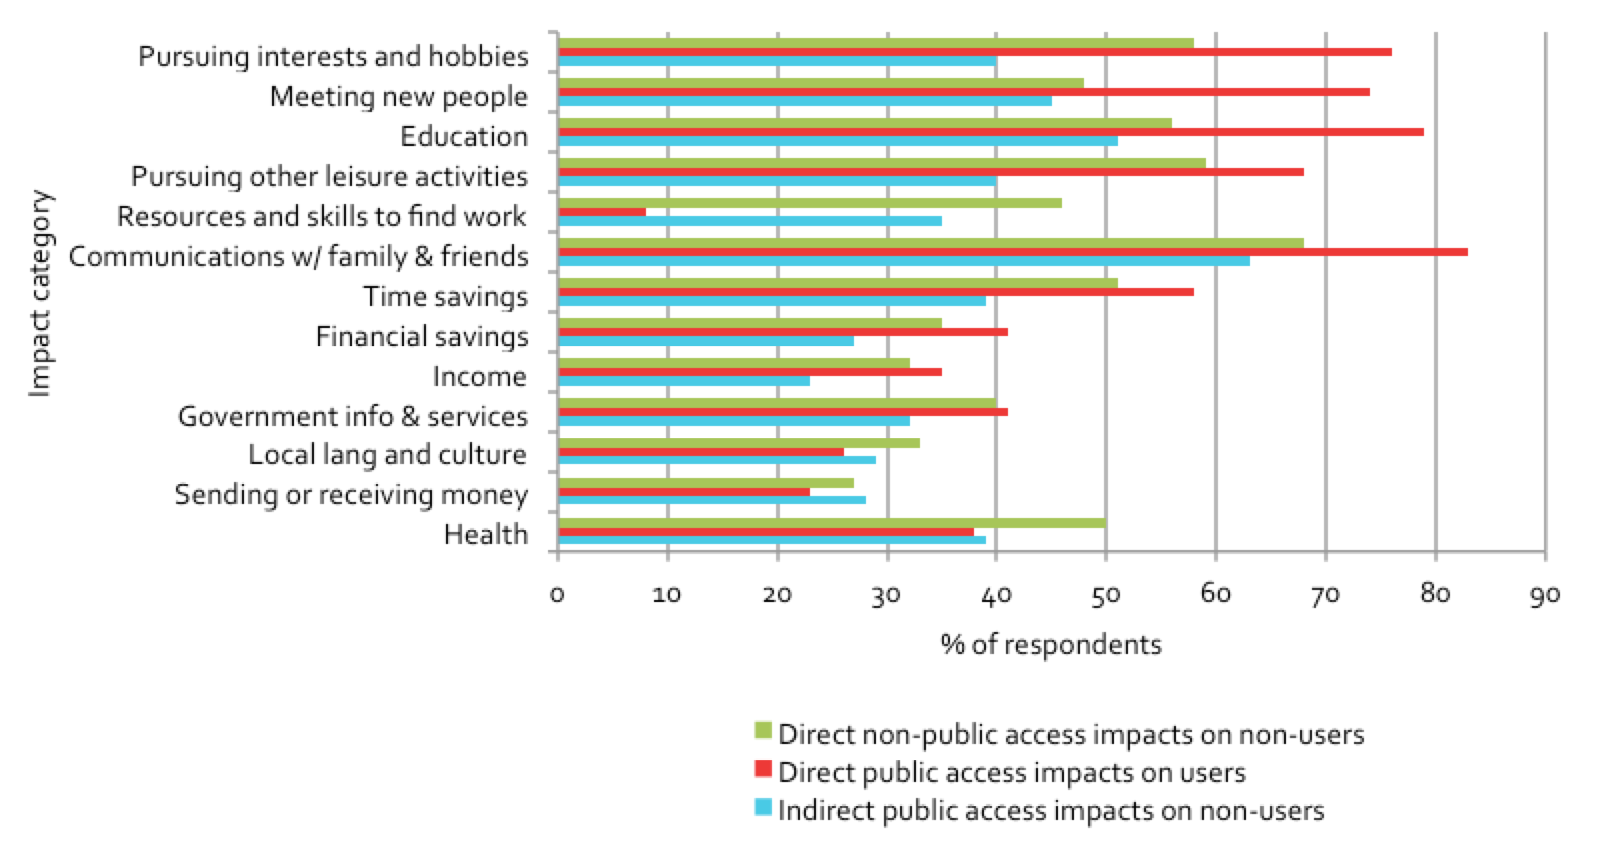 Figure 6.9: Rate of positive impacts, by type of impact and information source